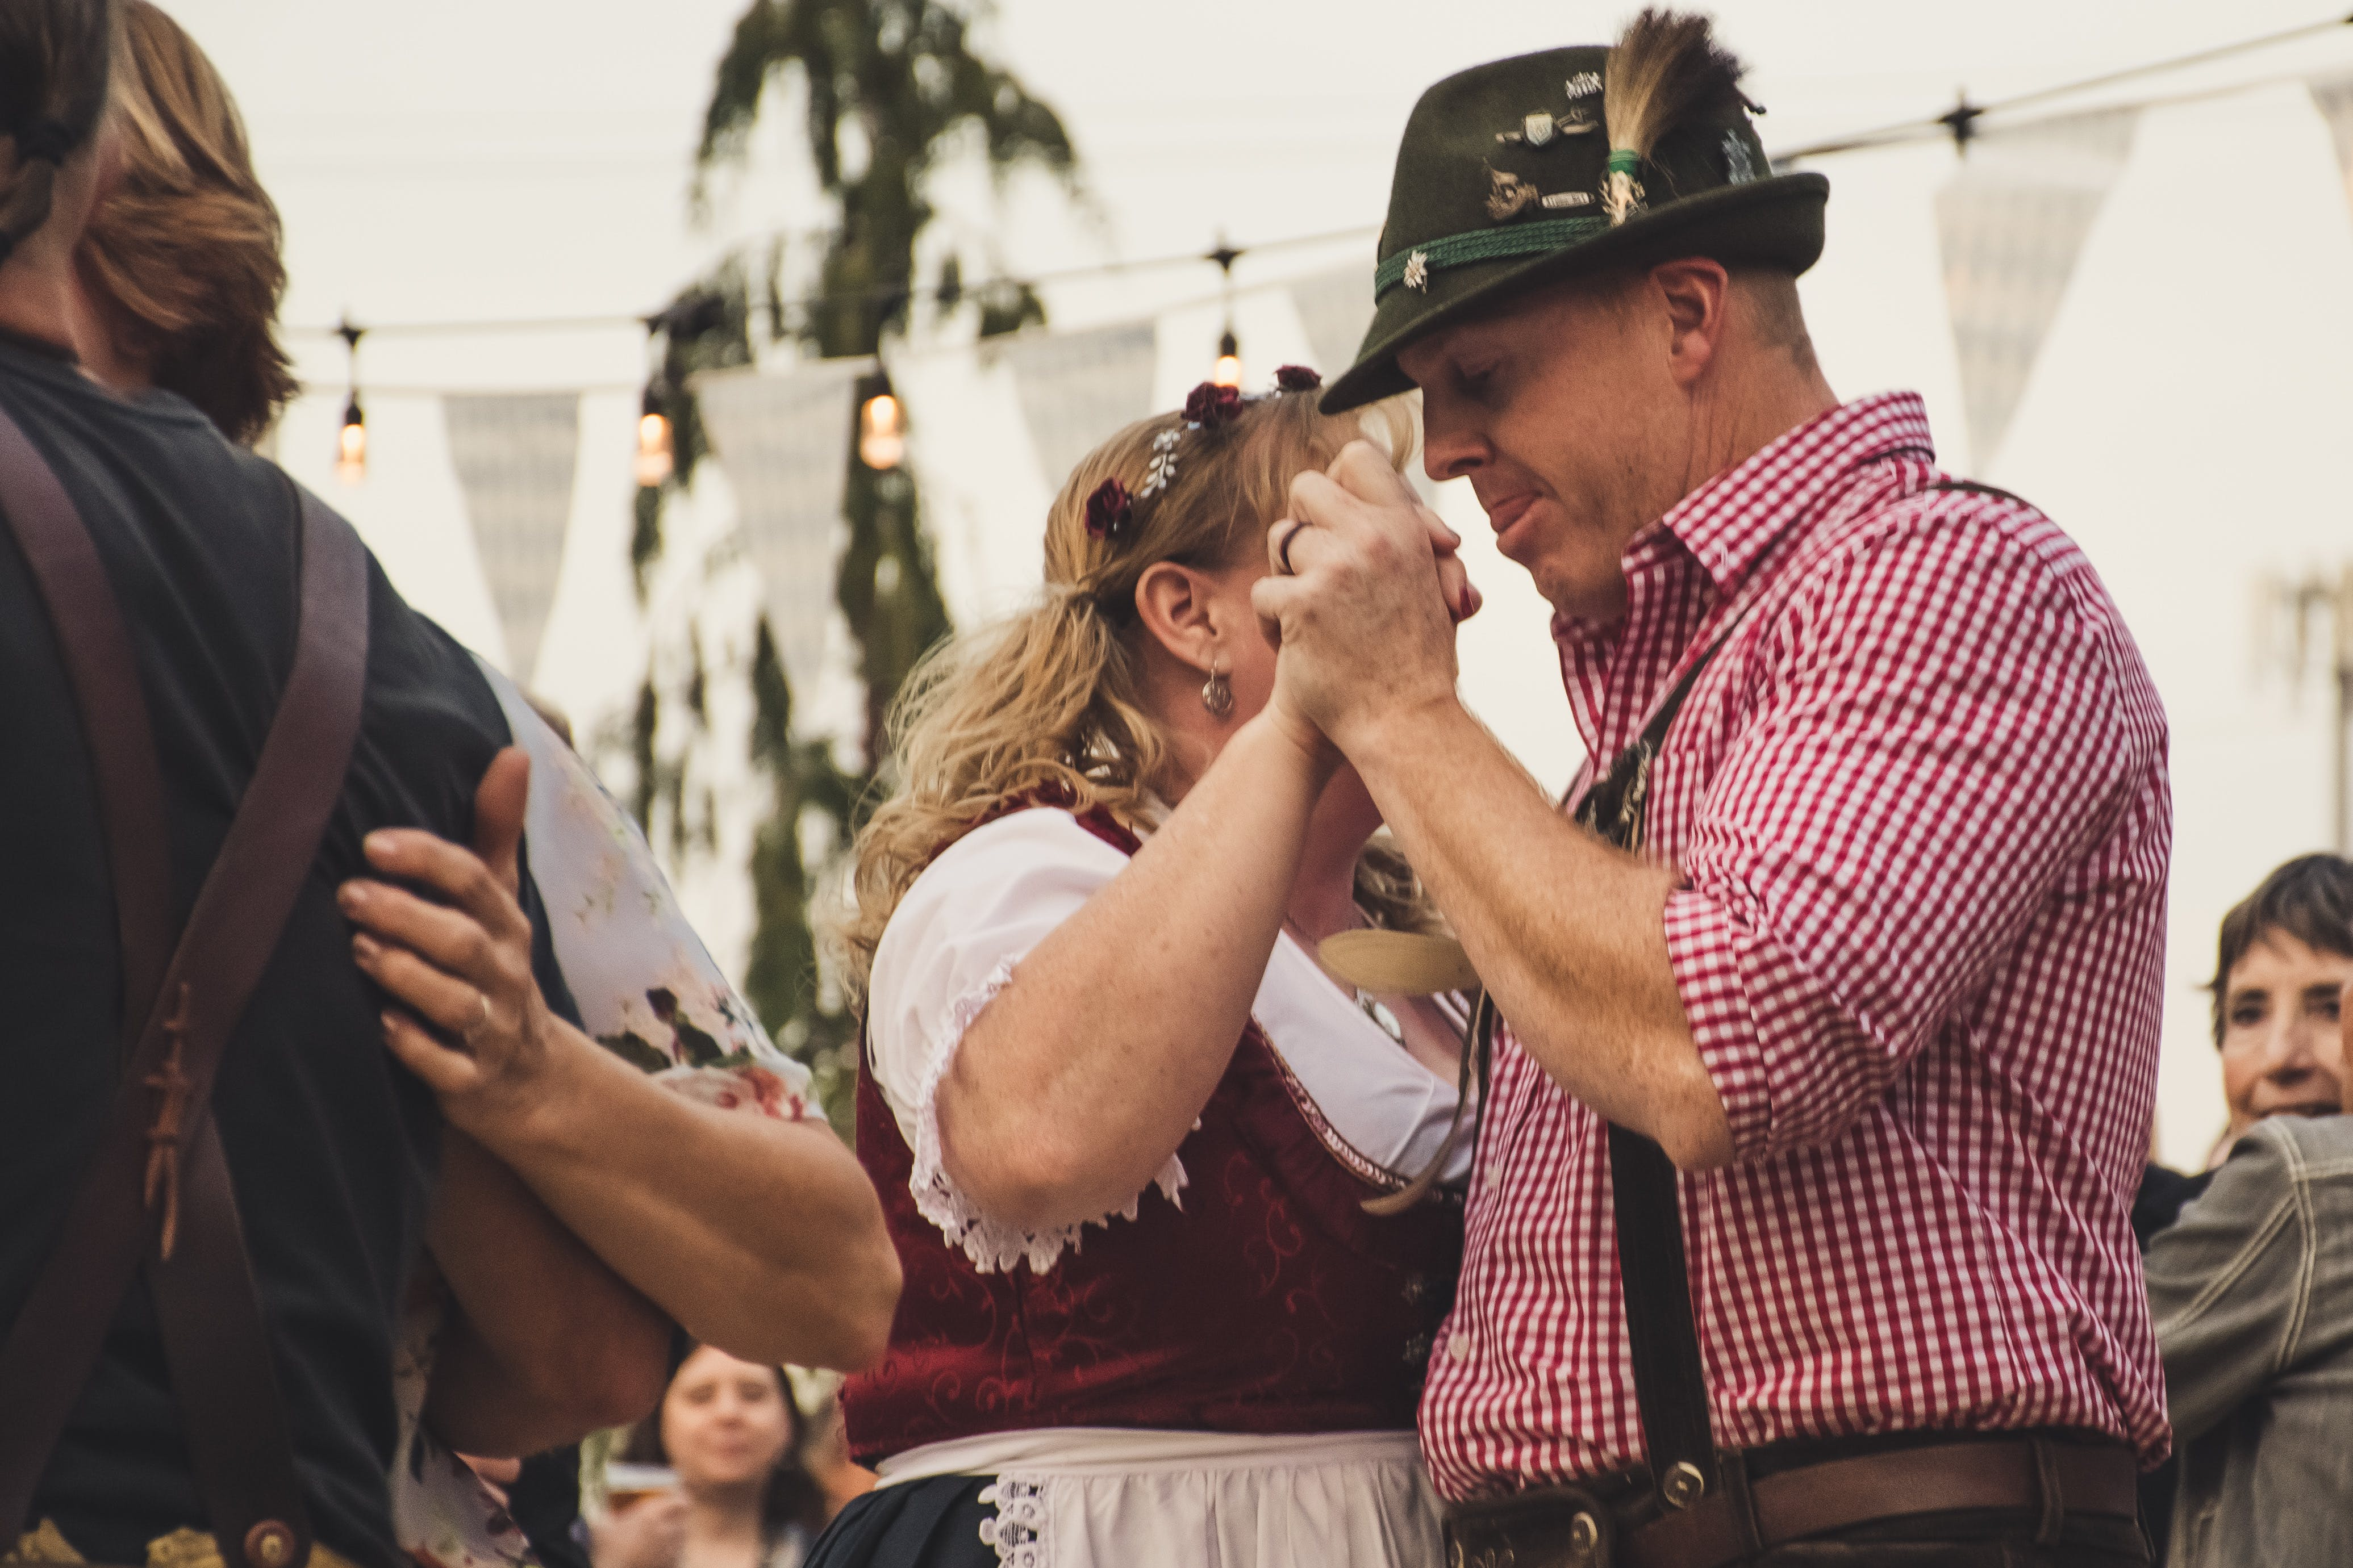 Group Of People Dancing Together